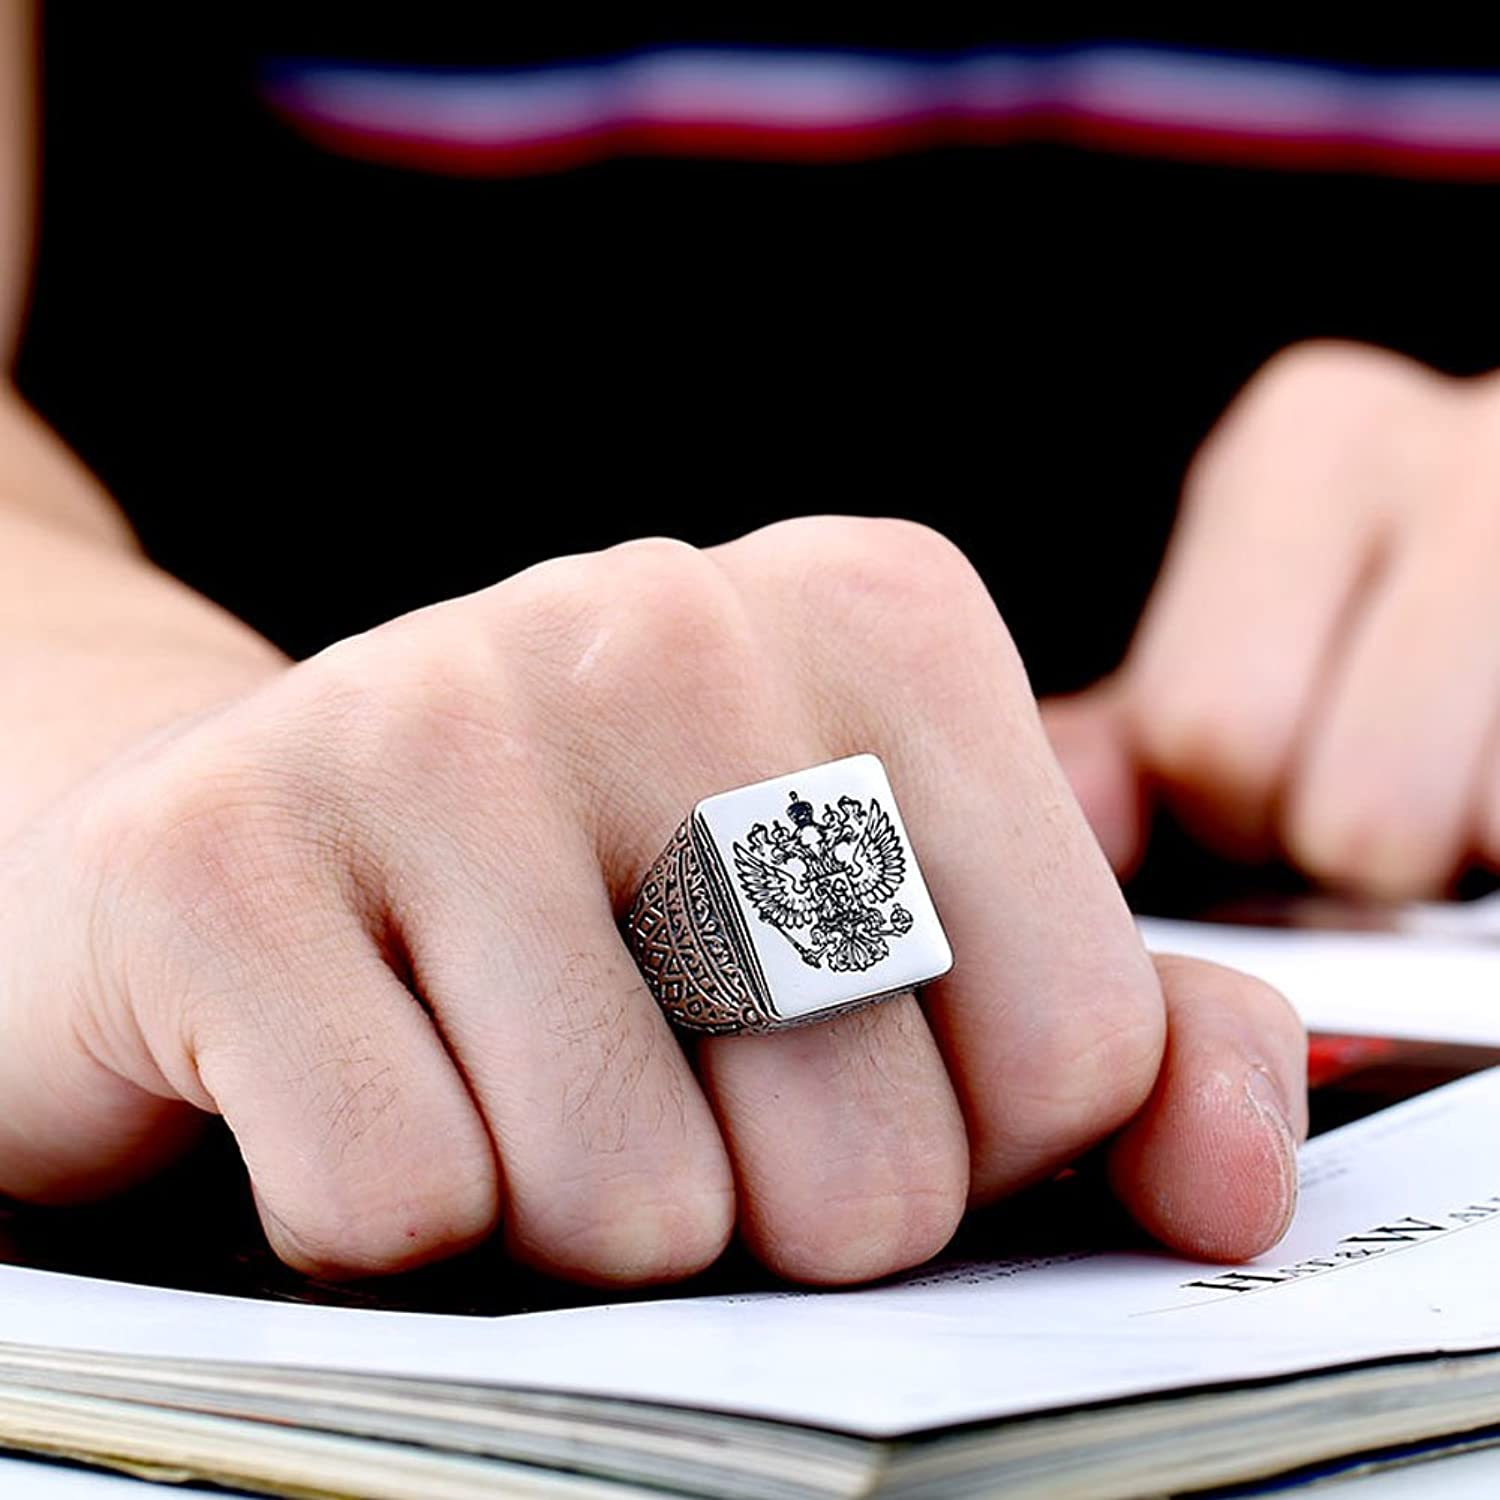 Russian Impirial Double Head Eagle Ring Solid Silver Stainless Mens ...